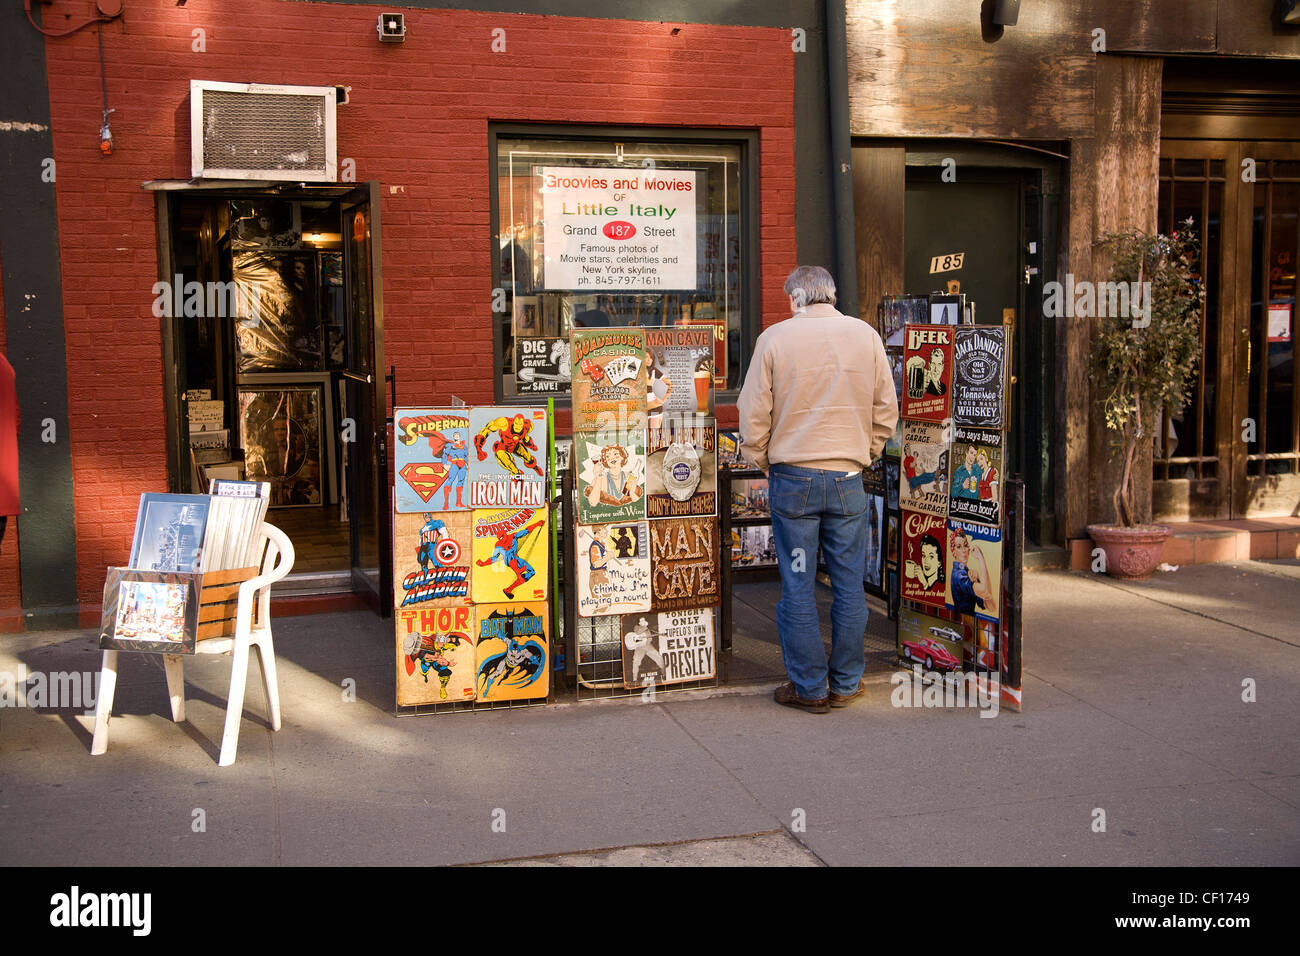 Movie posters and other collectibles, Little Italy, NYC. - Stock Image